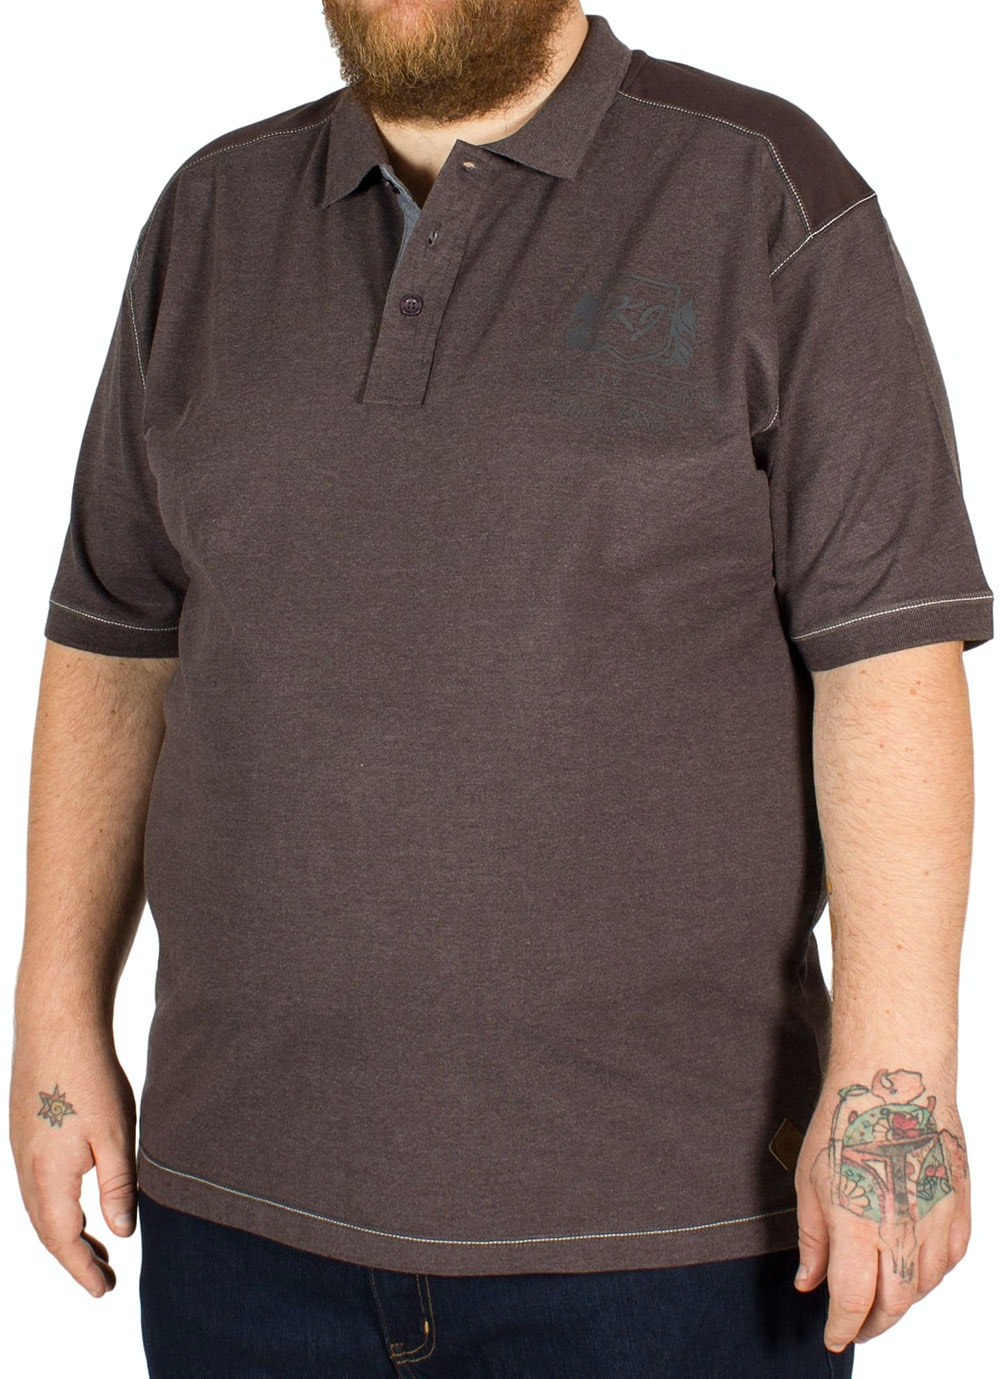 KAM Jersey Polo Shirt Charcoal